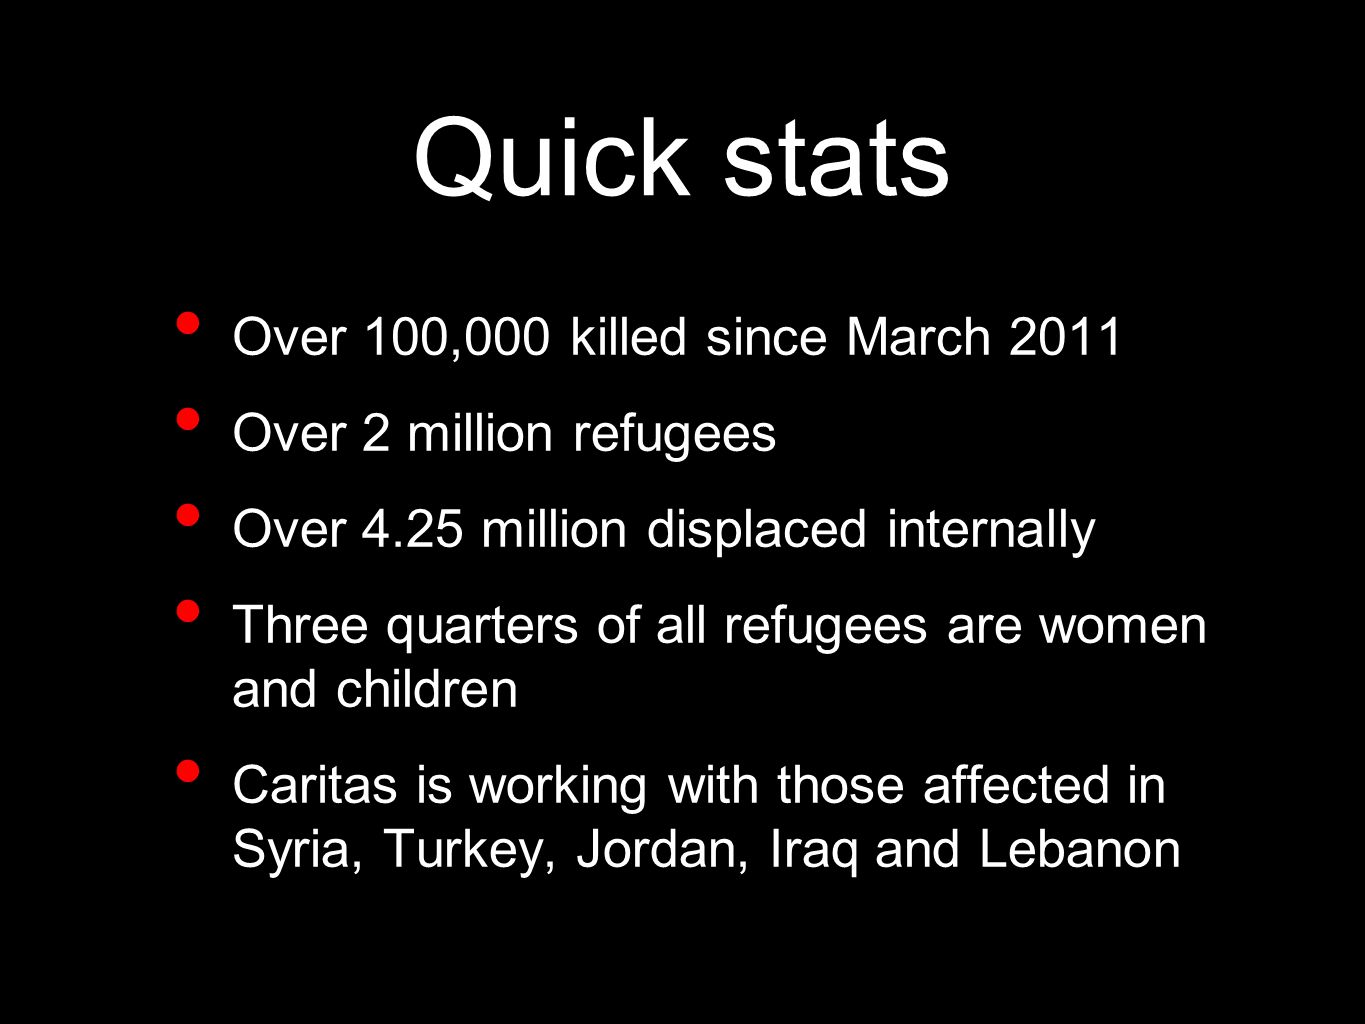 Quick stats Over 100,000 killed since March 2011 Over 2 million refugees Over 4.25 million displaced internally Three quarters of all refugees are women and children Caritas is working with those affected in Syria, Turkey, Jordan, Iraq and Lebanon